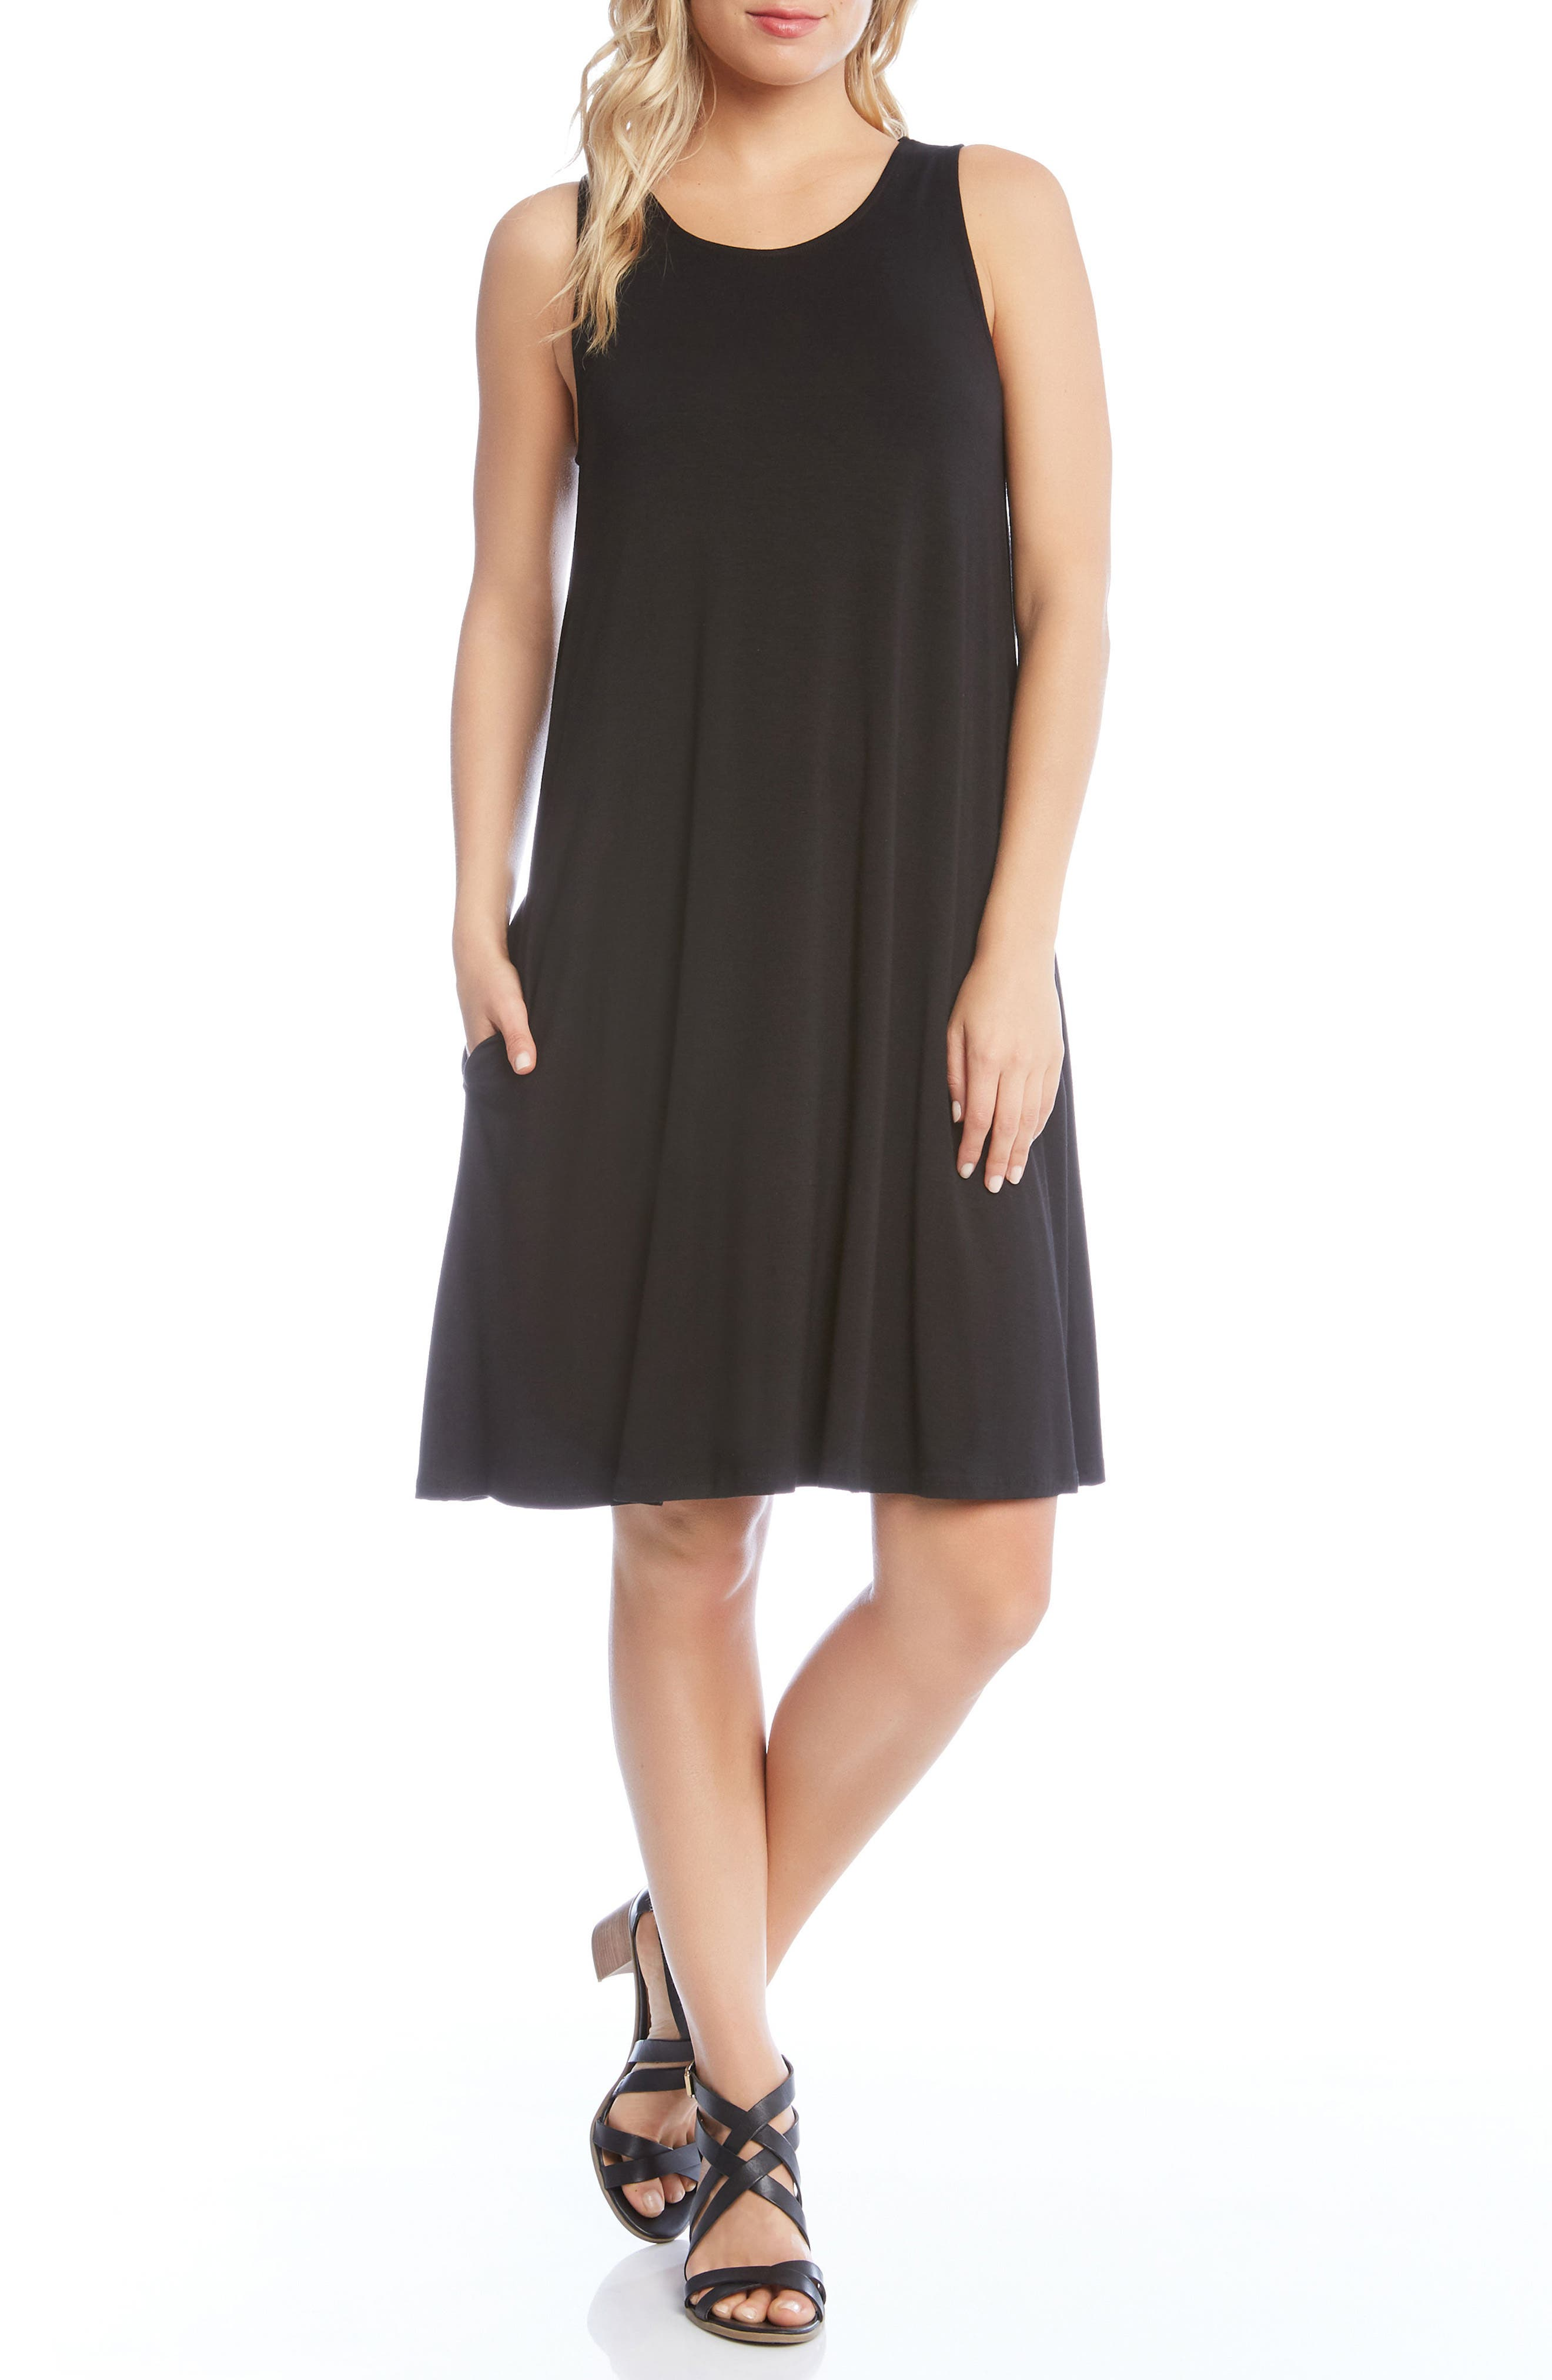 Chloe Swing Jersey Dress,                             Main thumbnail 1, color,                             Black